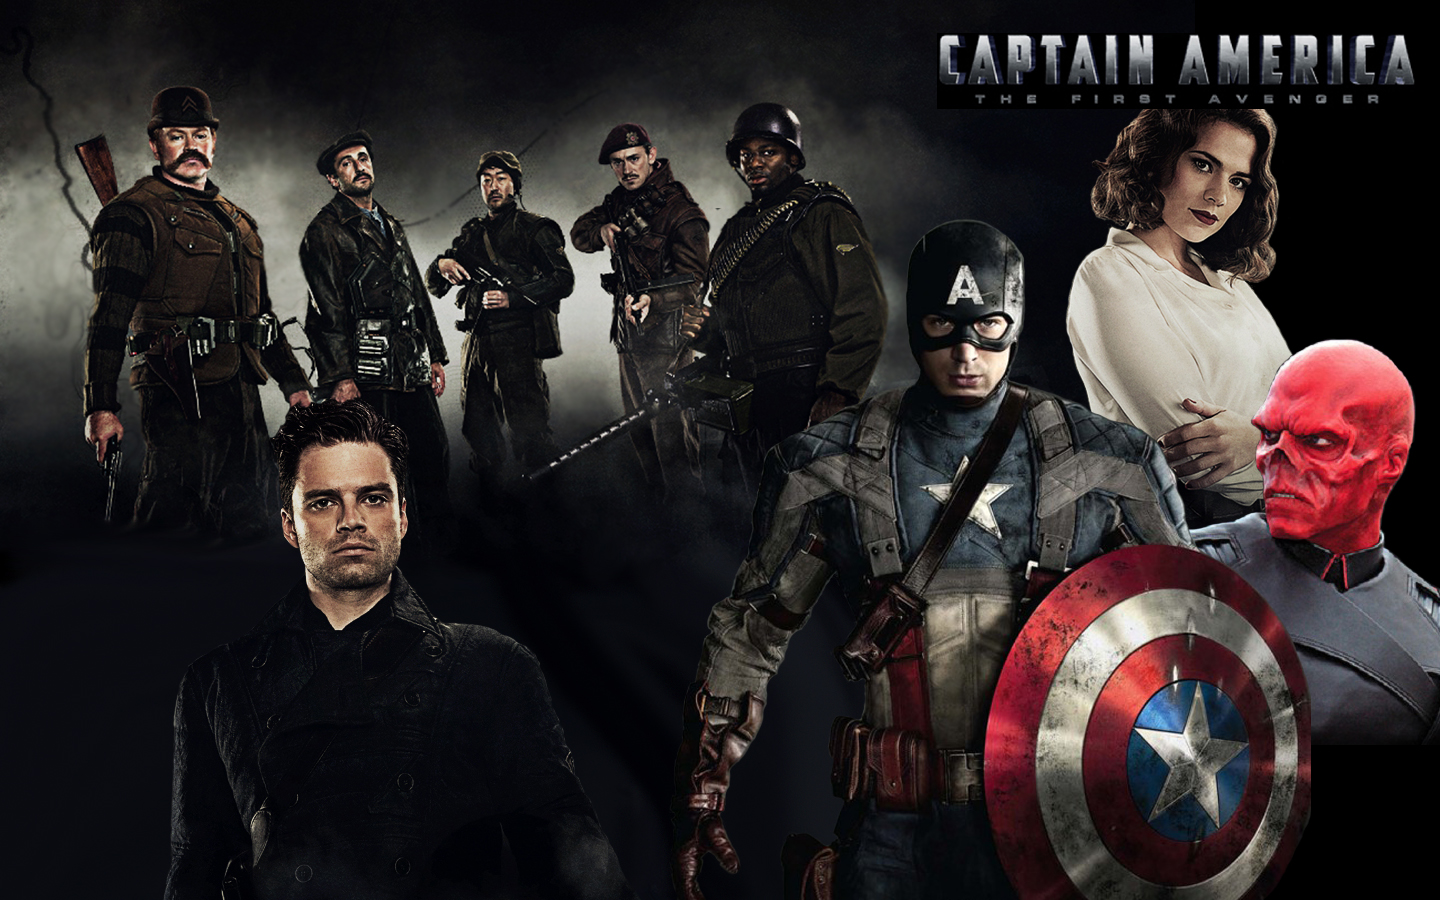 Captain-America-Movie-Captain-america-avenger-movie-in-high-resolution-for-free-Get-Captain-wallpaper-wp3803625